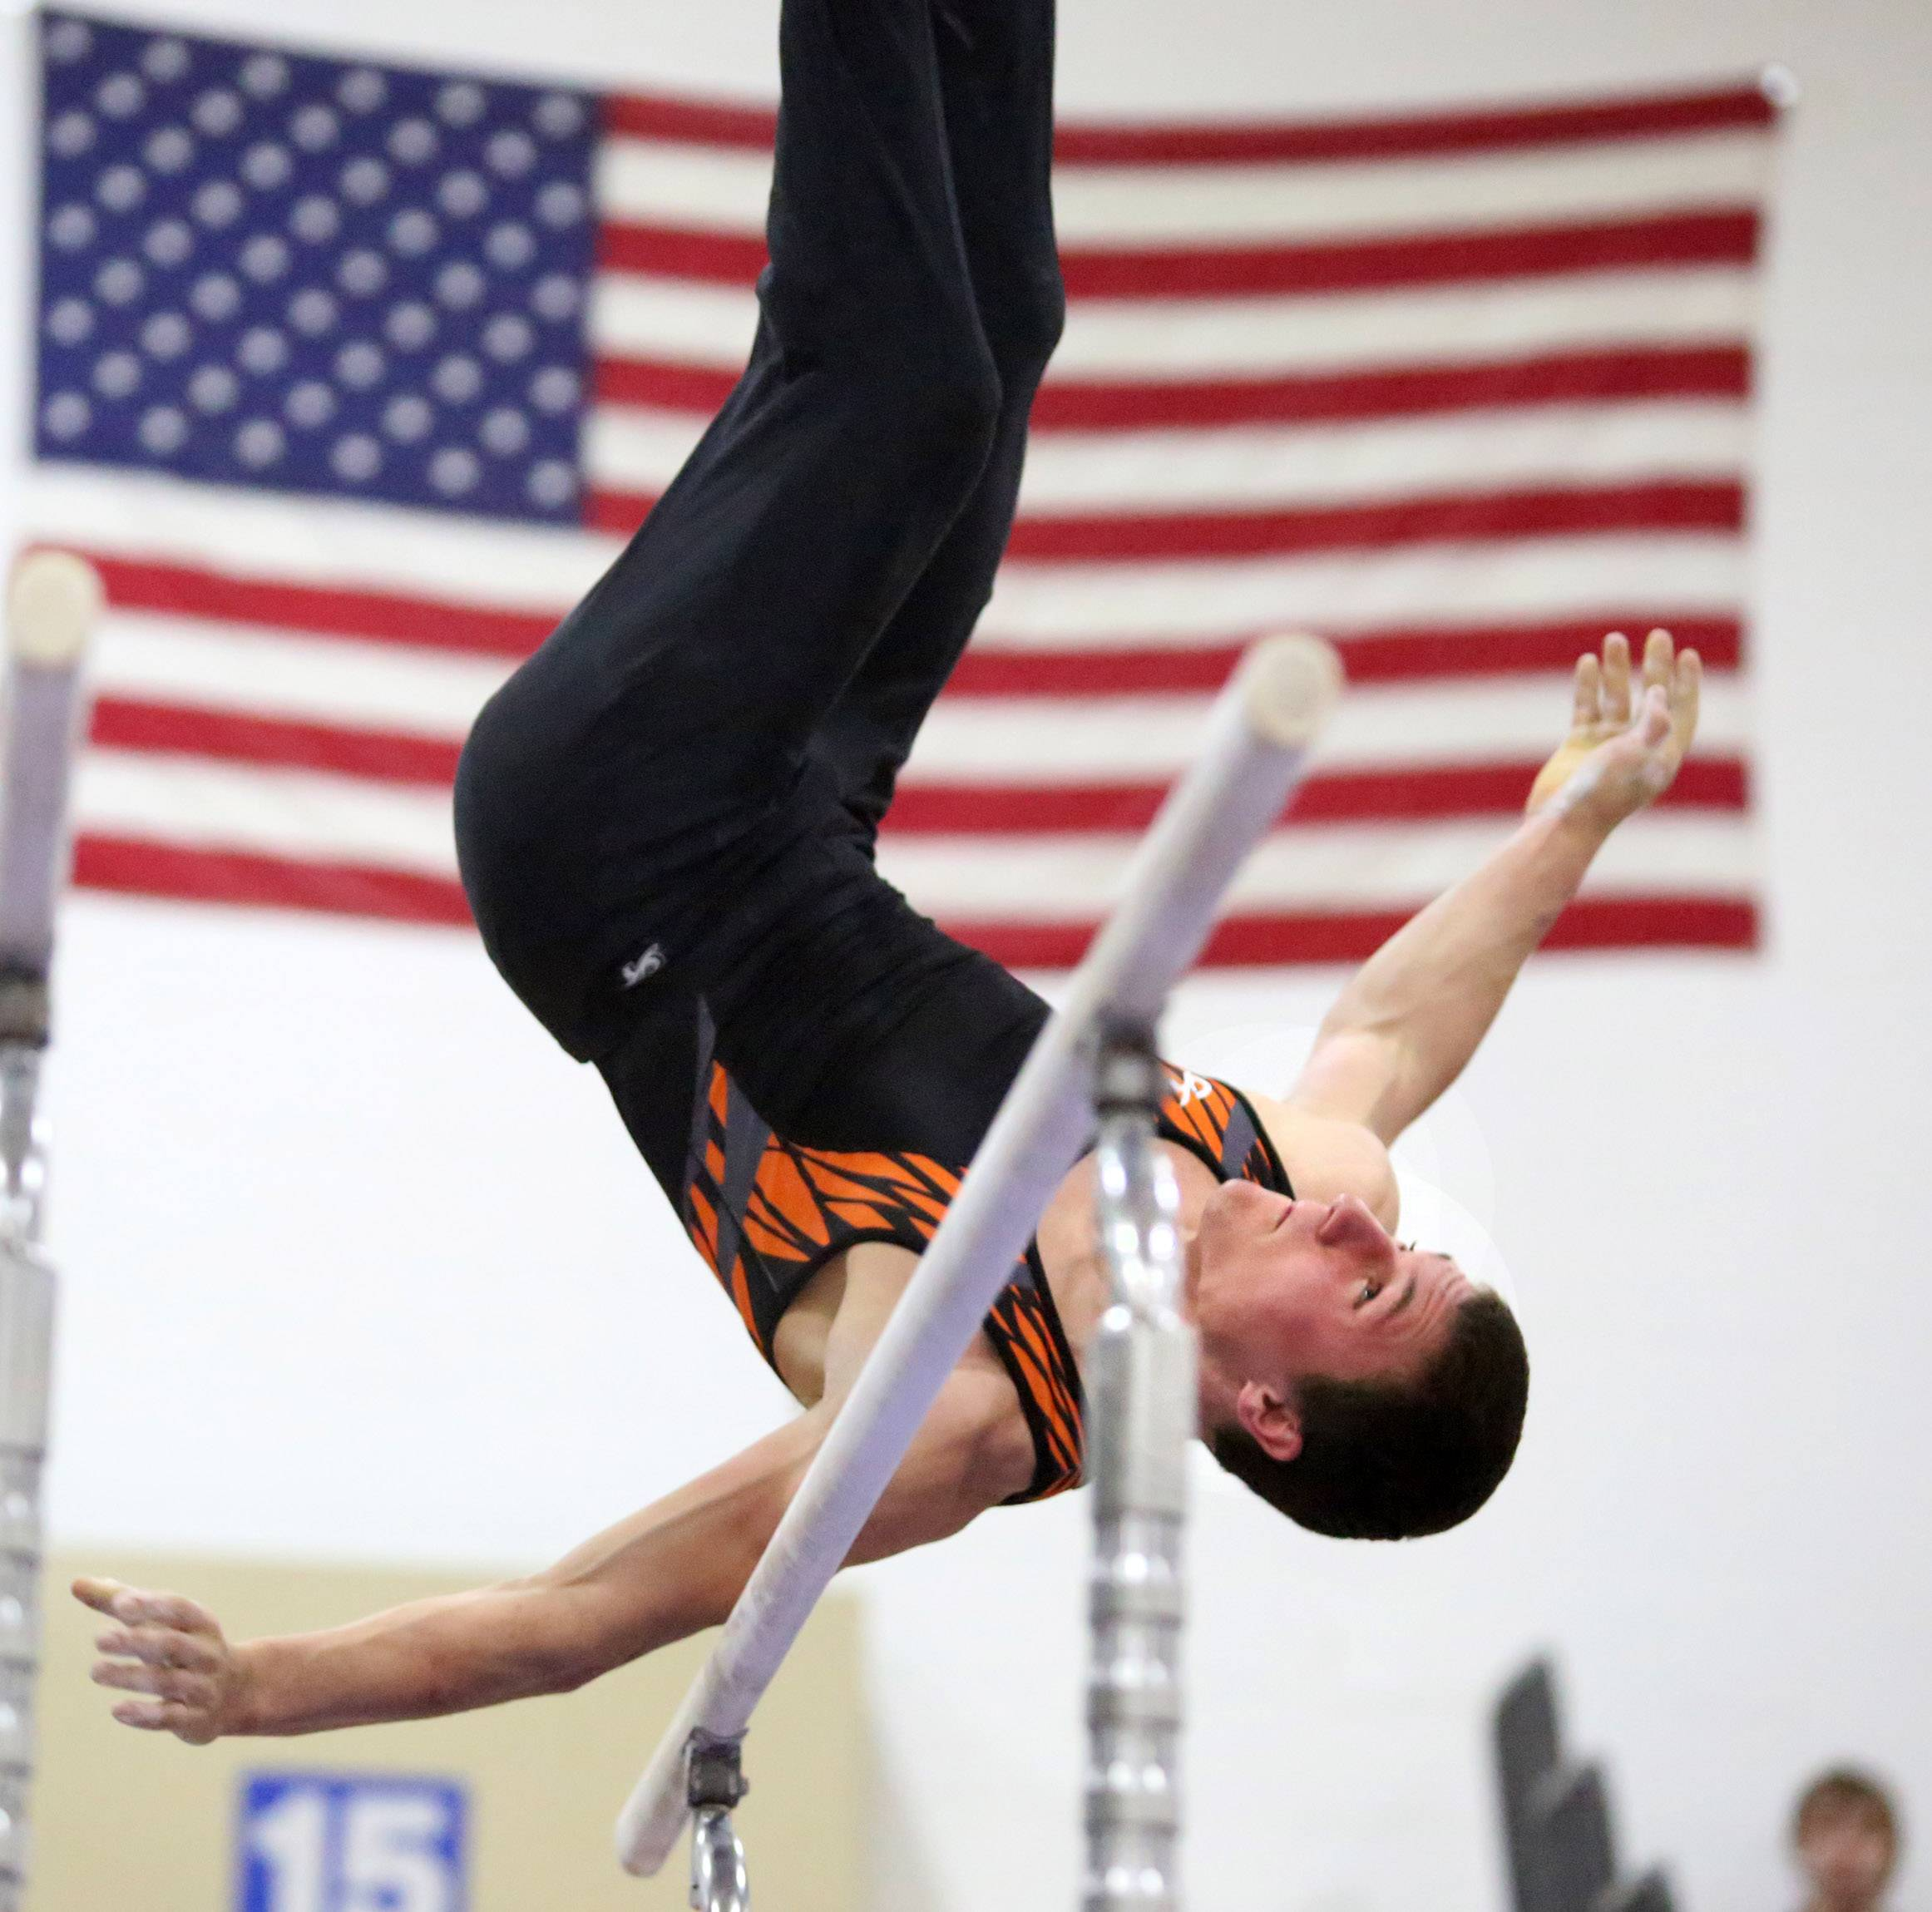 Libertyville's Jack Burke dismounts from the parallel bars during Thursday's gymnastics meet in Hoffman Estates.